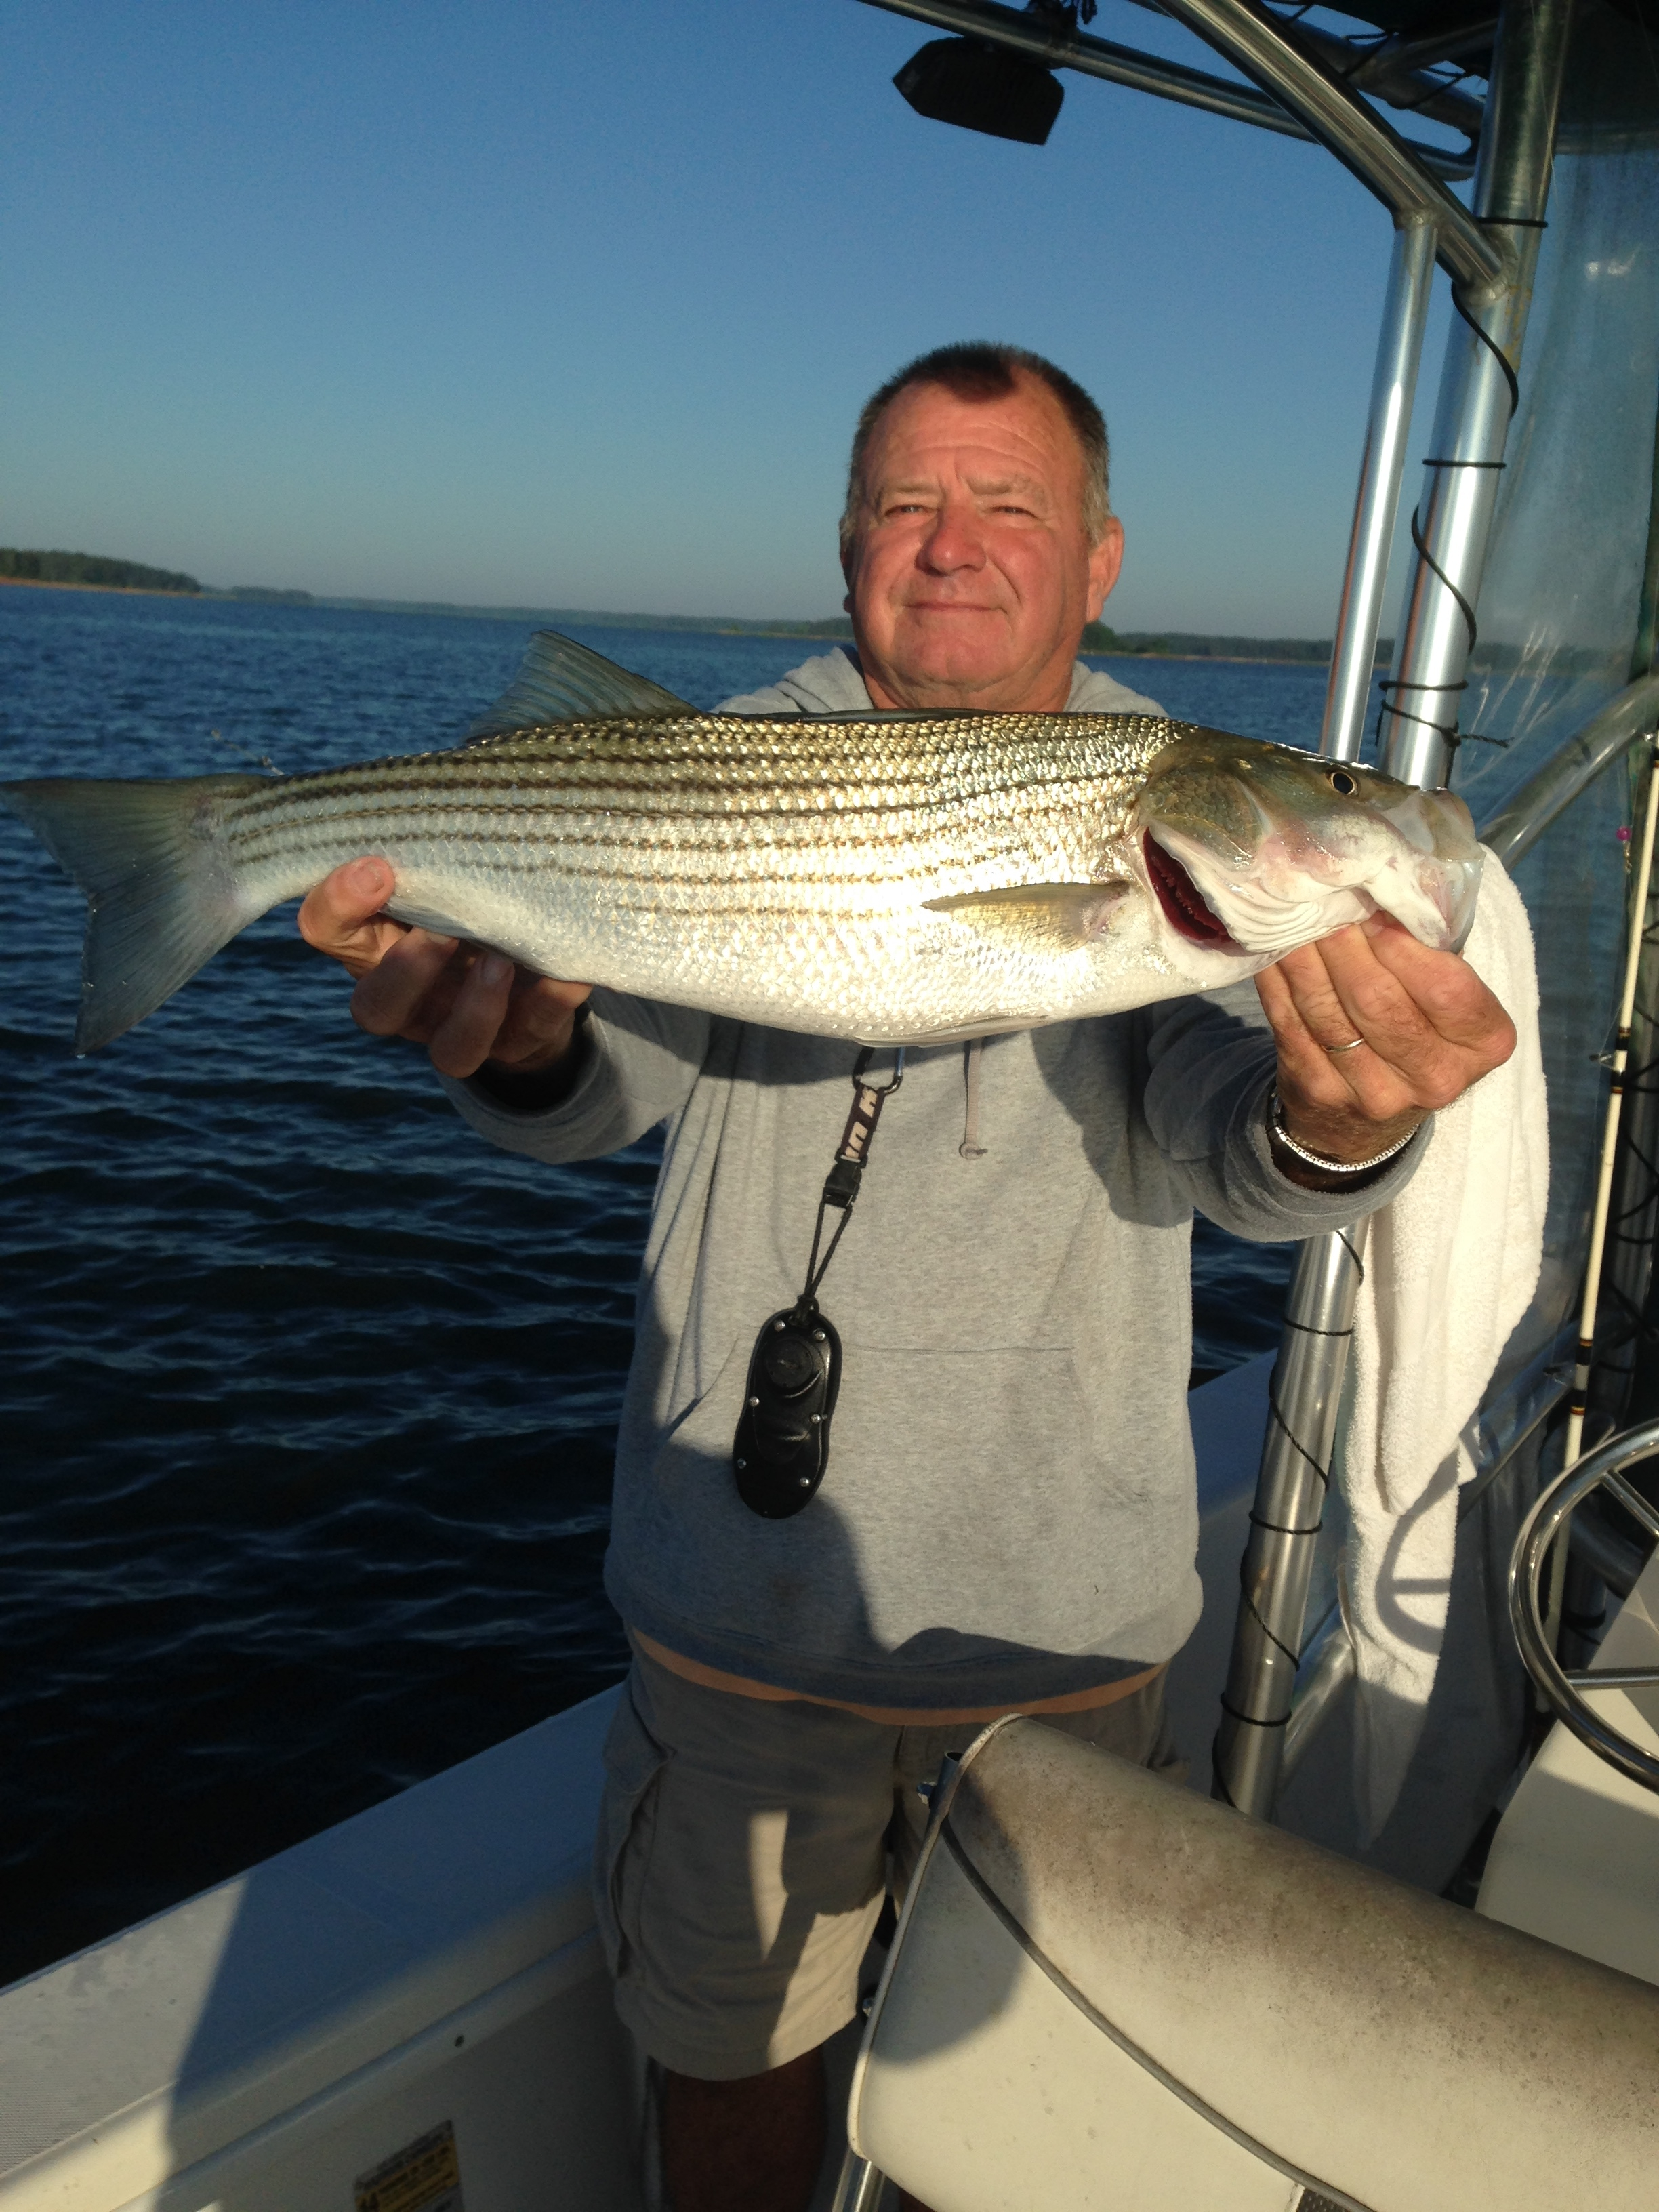 May 15, 2017 Billy with 8 lb striper